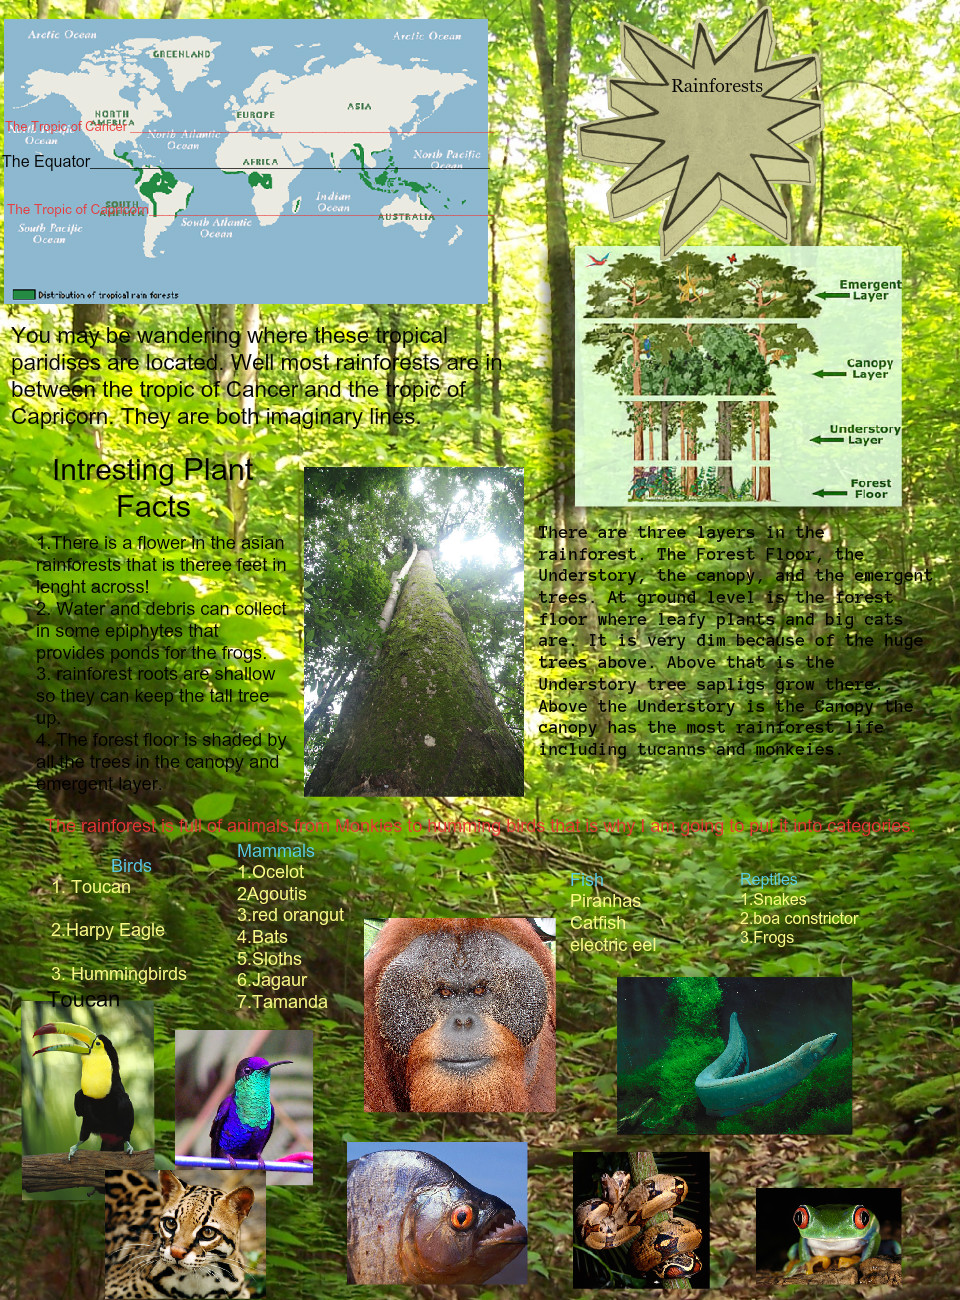 Cayde's rainforest brochure